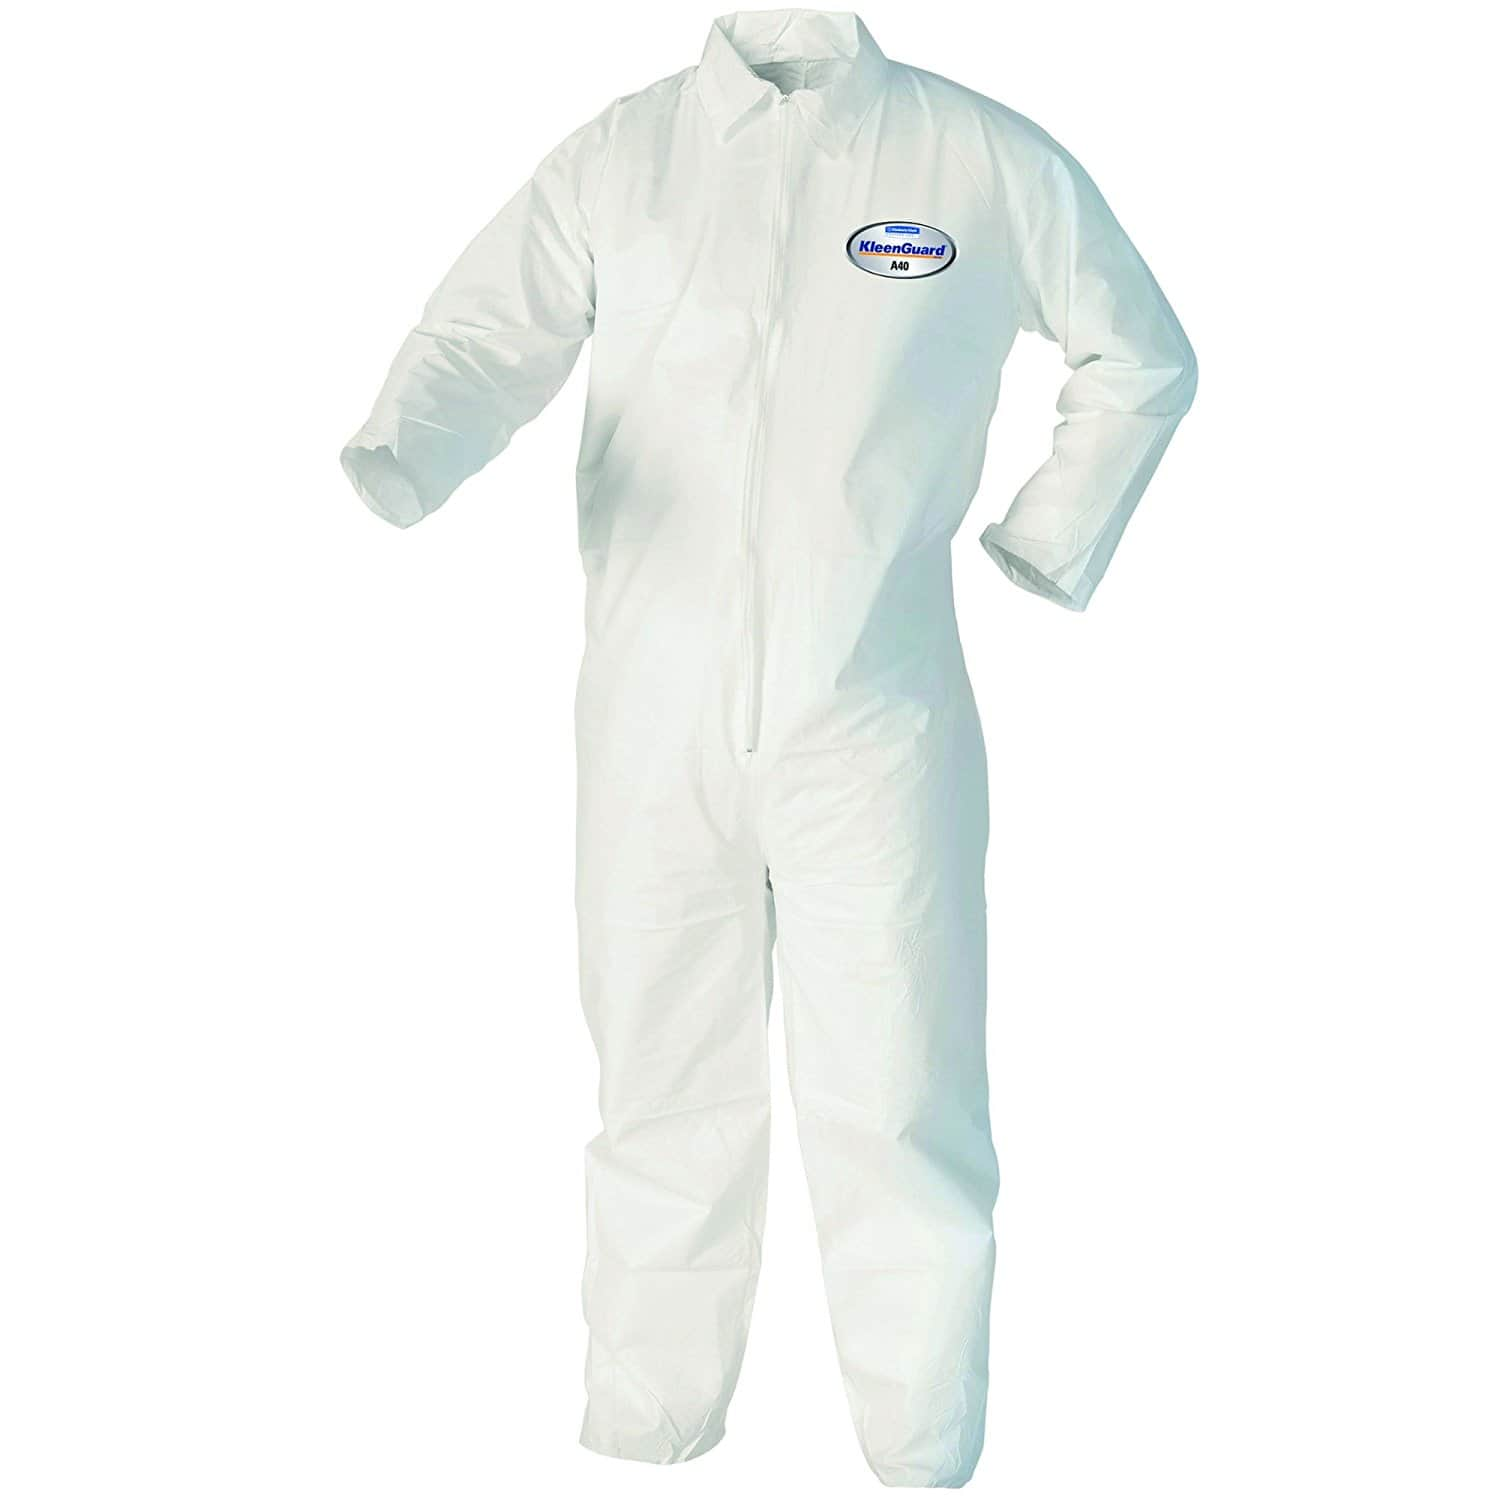 Kleenguard A40 Liquid & Particle Protection Coveralls Size XL $4.34 Shipped S&S